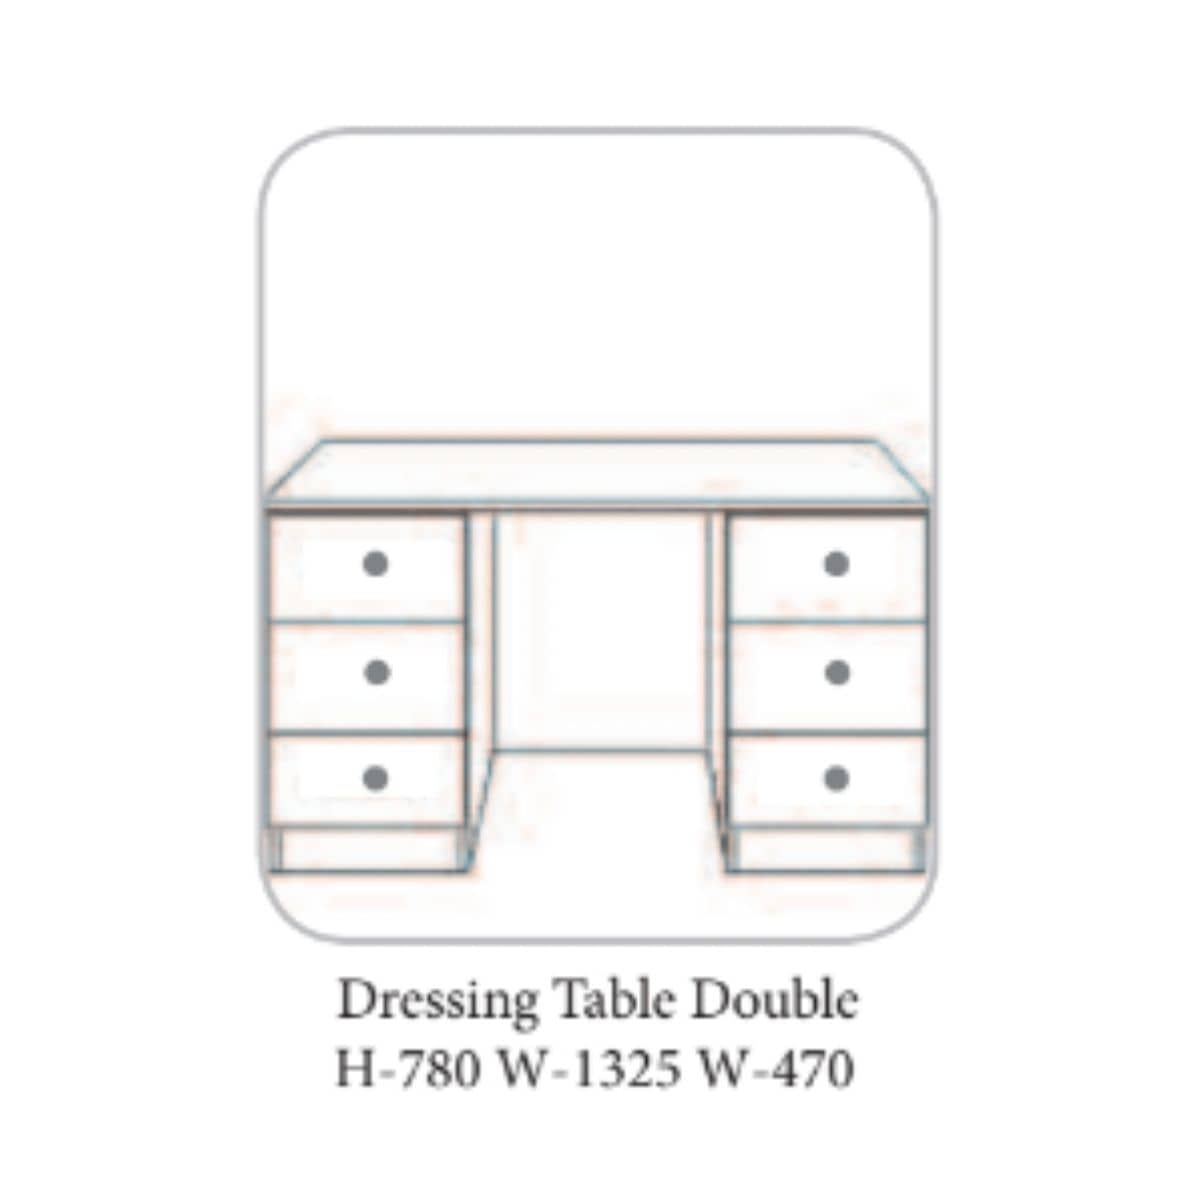 Bandon Dressing Table